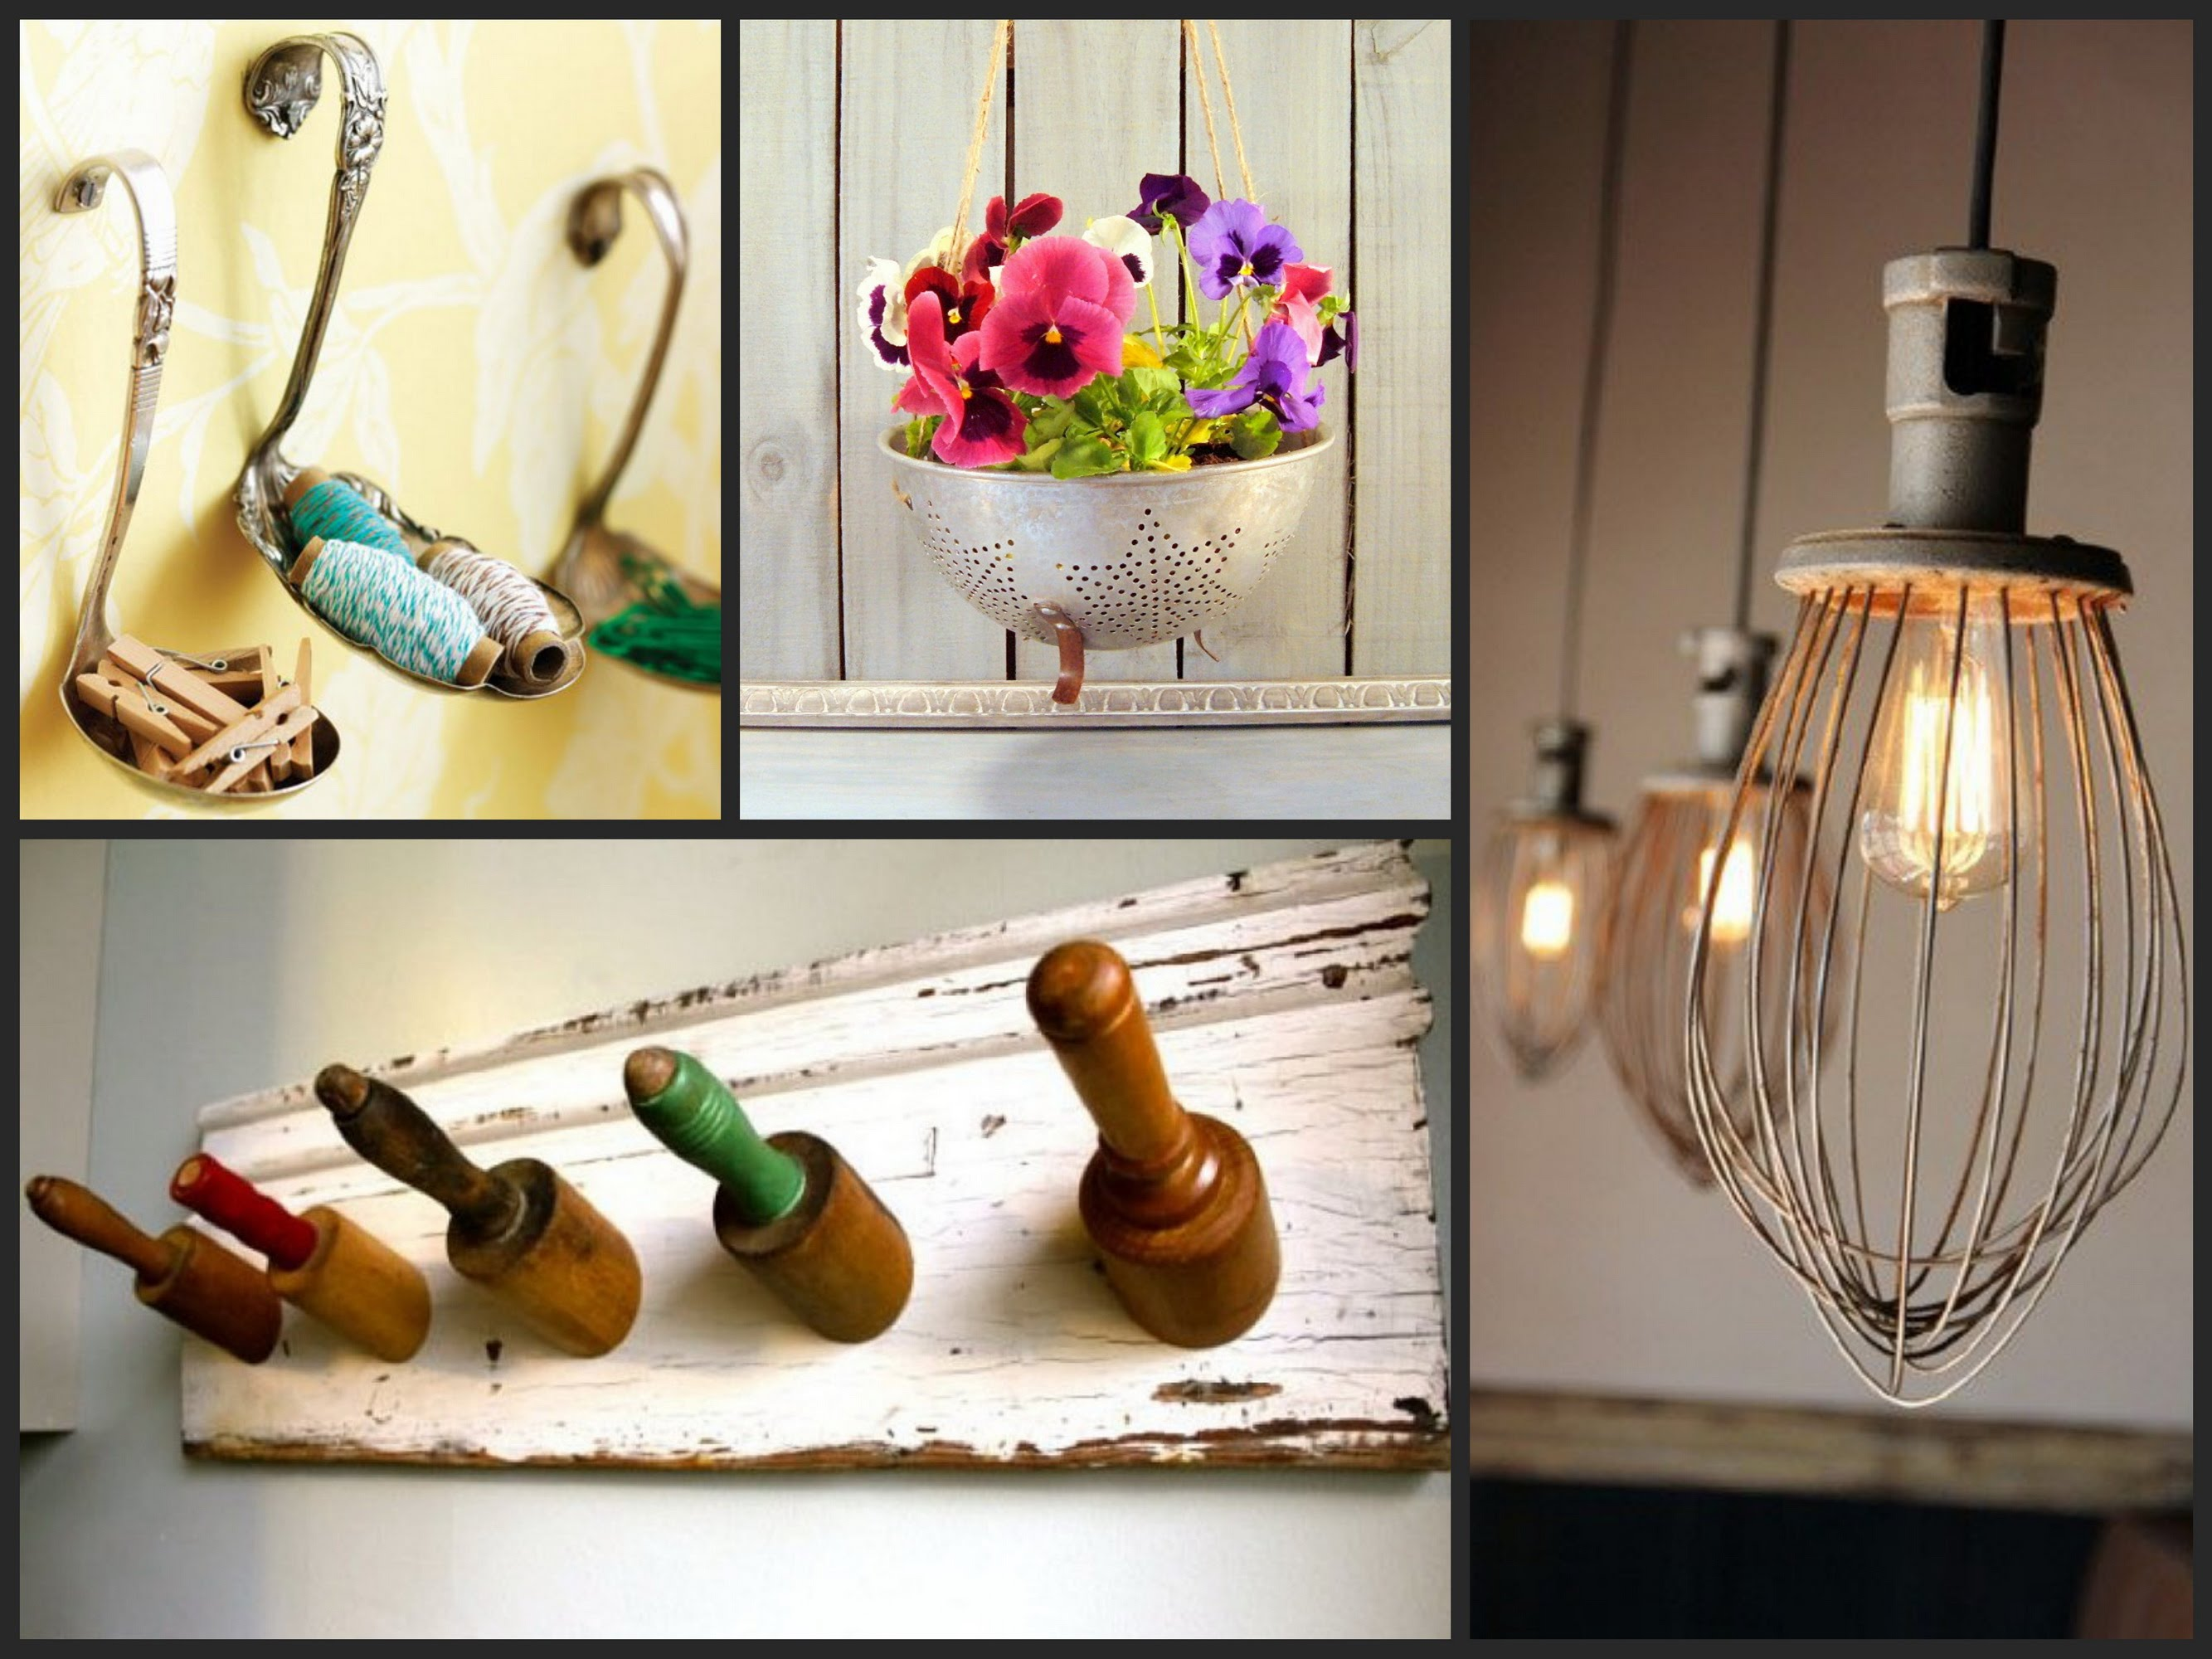 Ideas for home accessories best ideas for reusing old kitchen utensils - recycled kitchen utensils